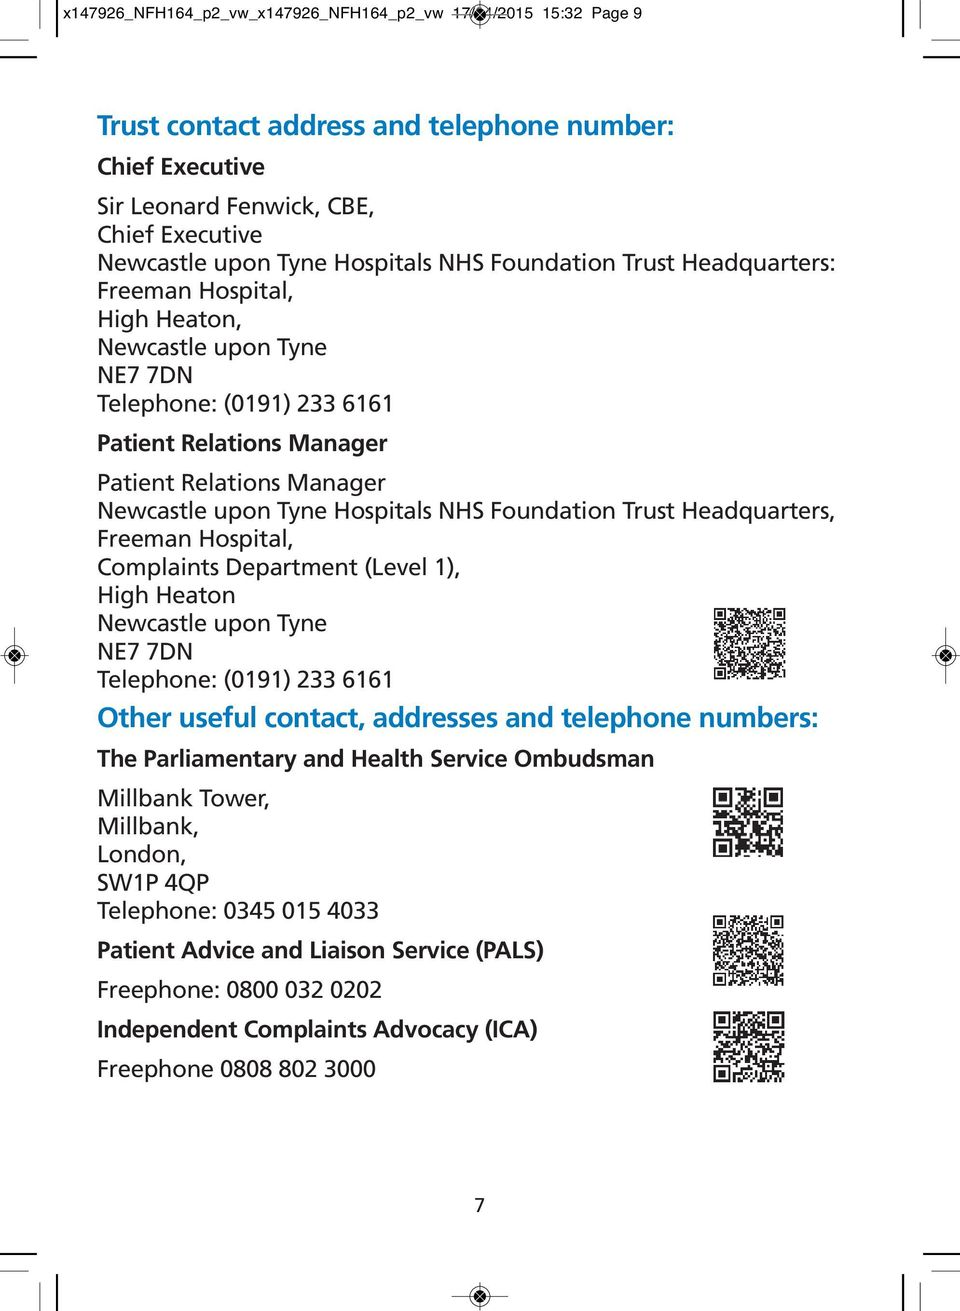 Hospitals NHS Foundation Trust Headquarters, Freeman Hospital, Complaints Department (Level 1), High Heaton Newcastle upon Tyne NE7 7DN Telephone: (0191) 233 6161 Other useful contact, addresses and